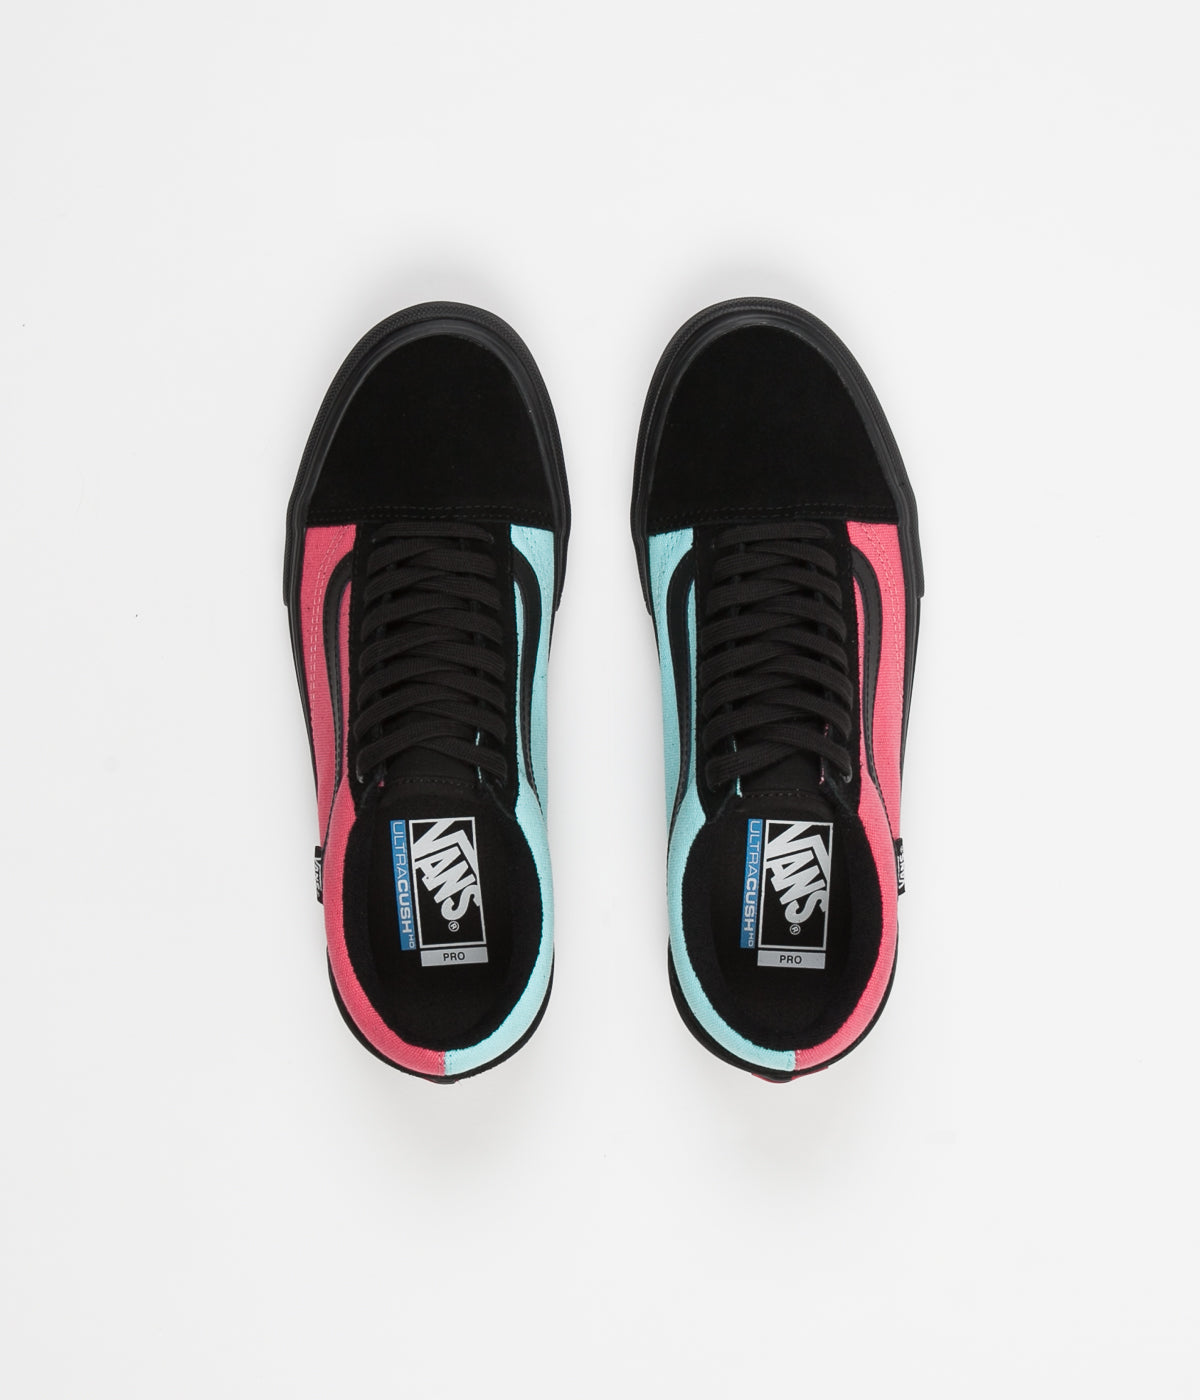 4c7b057929d1 Vans Old Skool Pro Asymmetry Shoes - Black   Rose   Blue ...